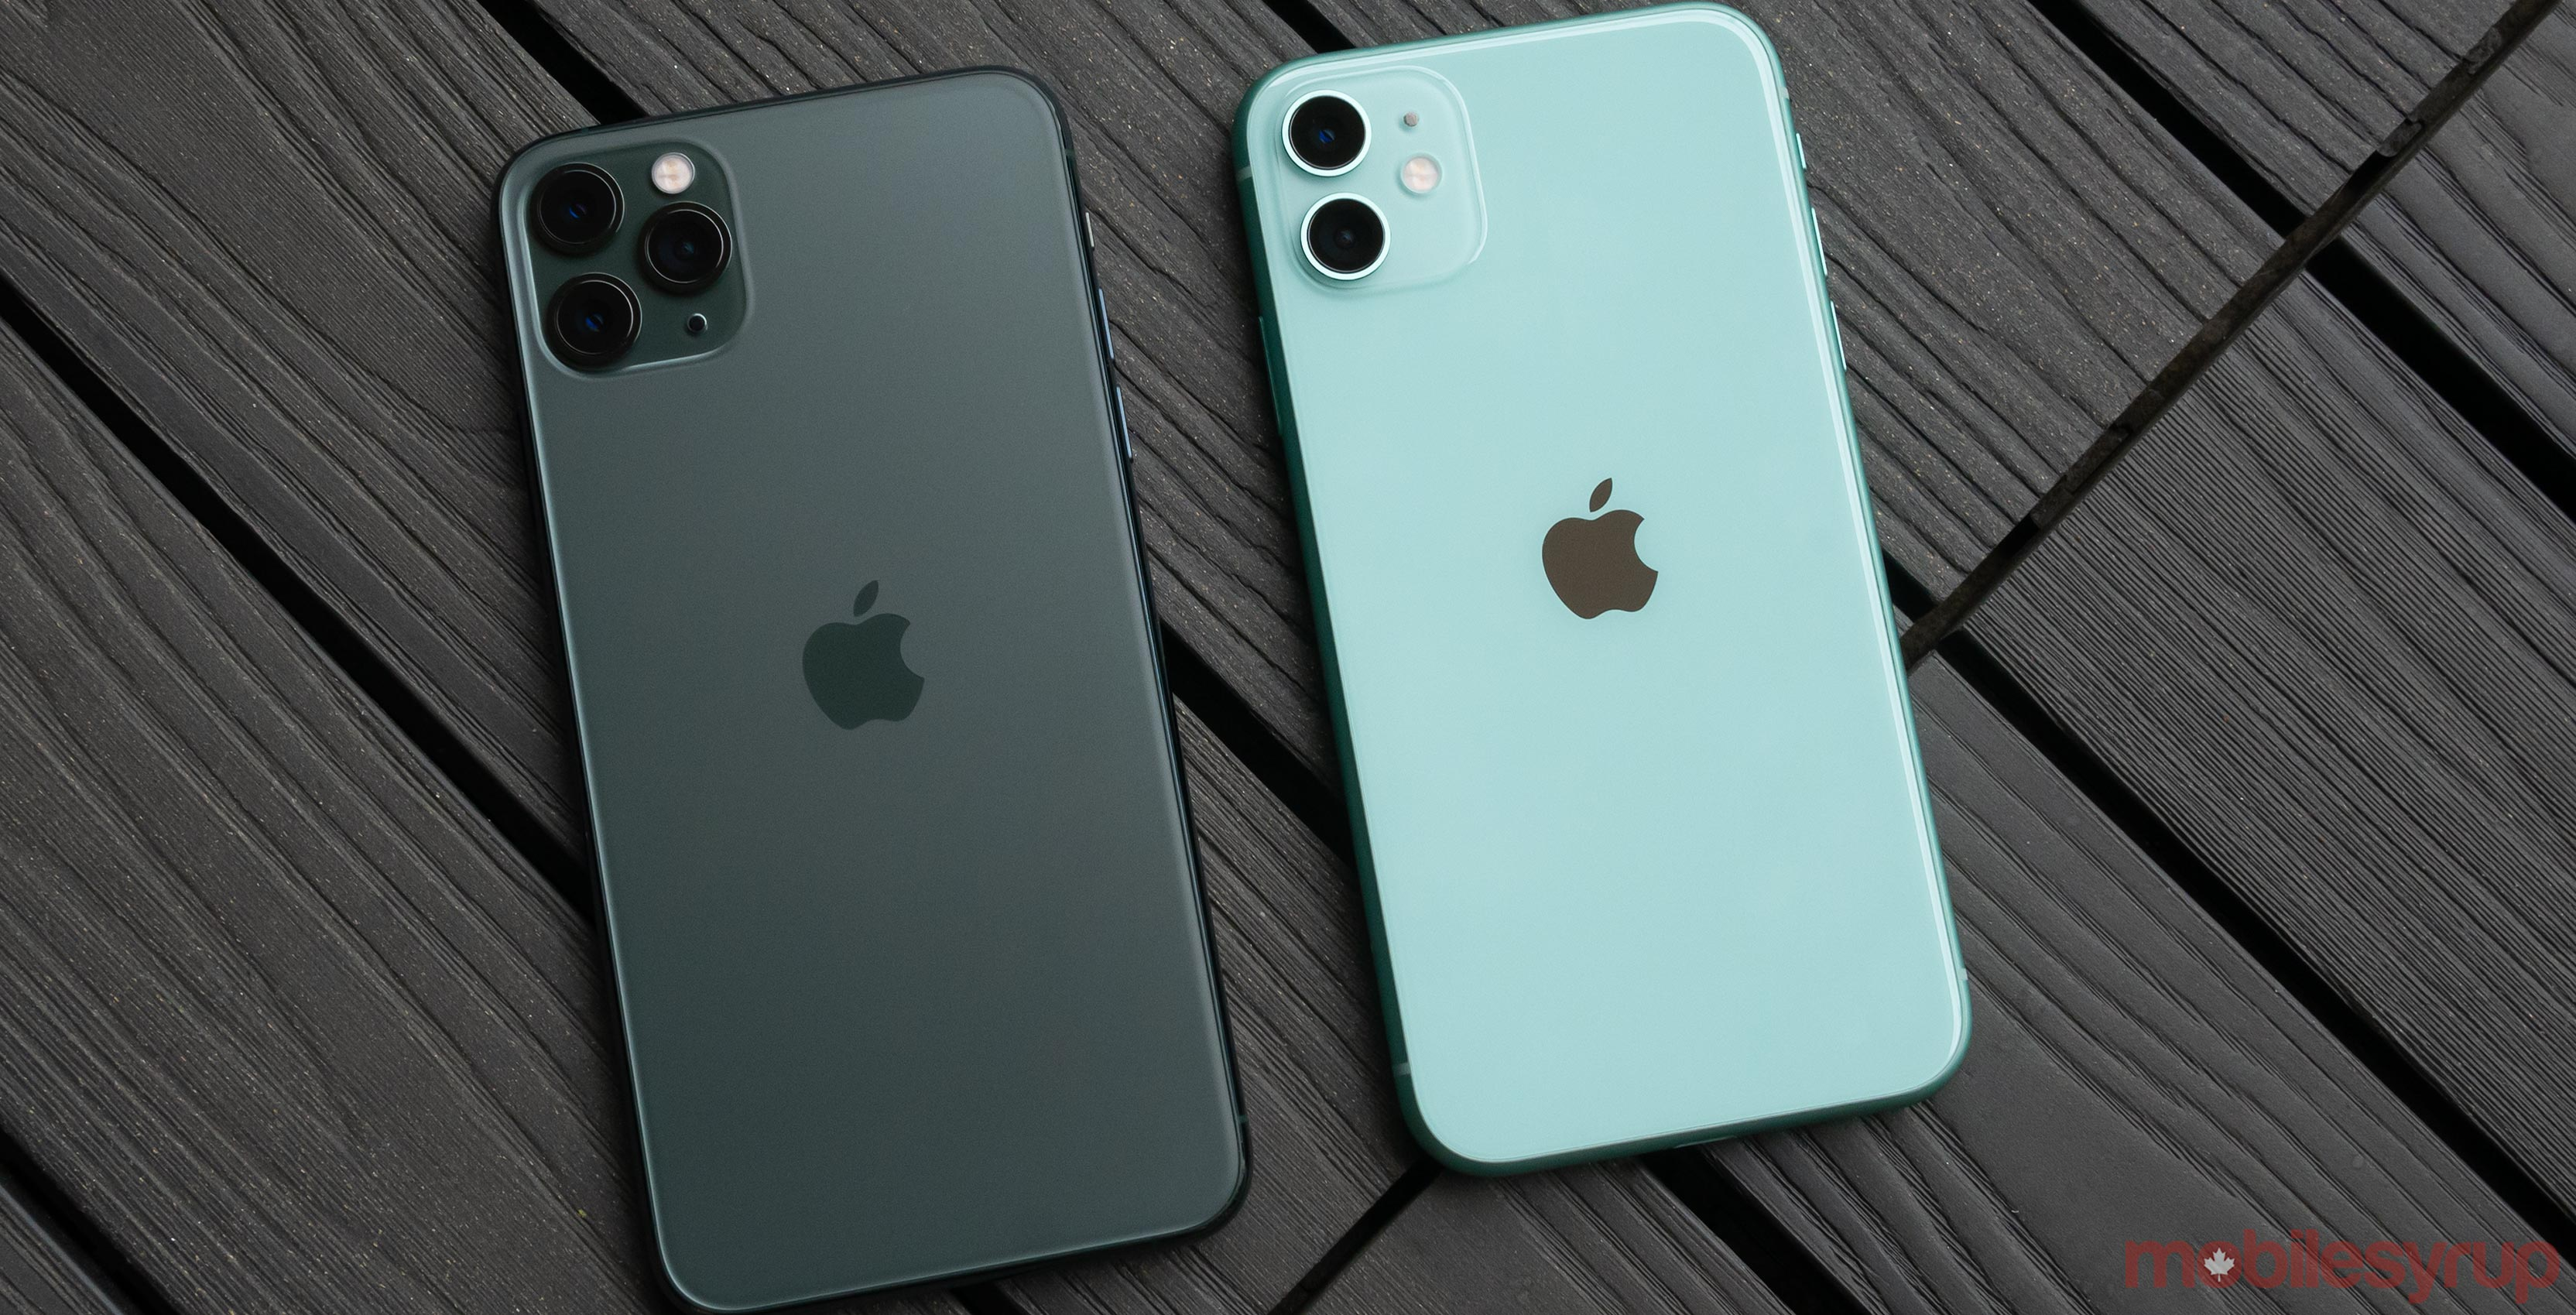 iPhone 11 Pro Max and iPhone 11